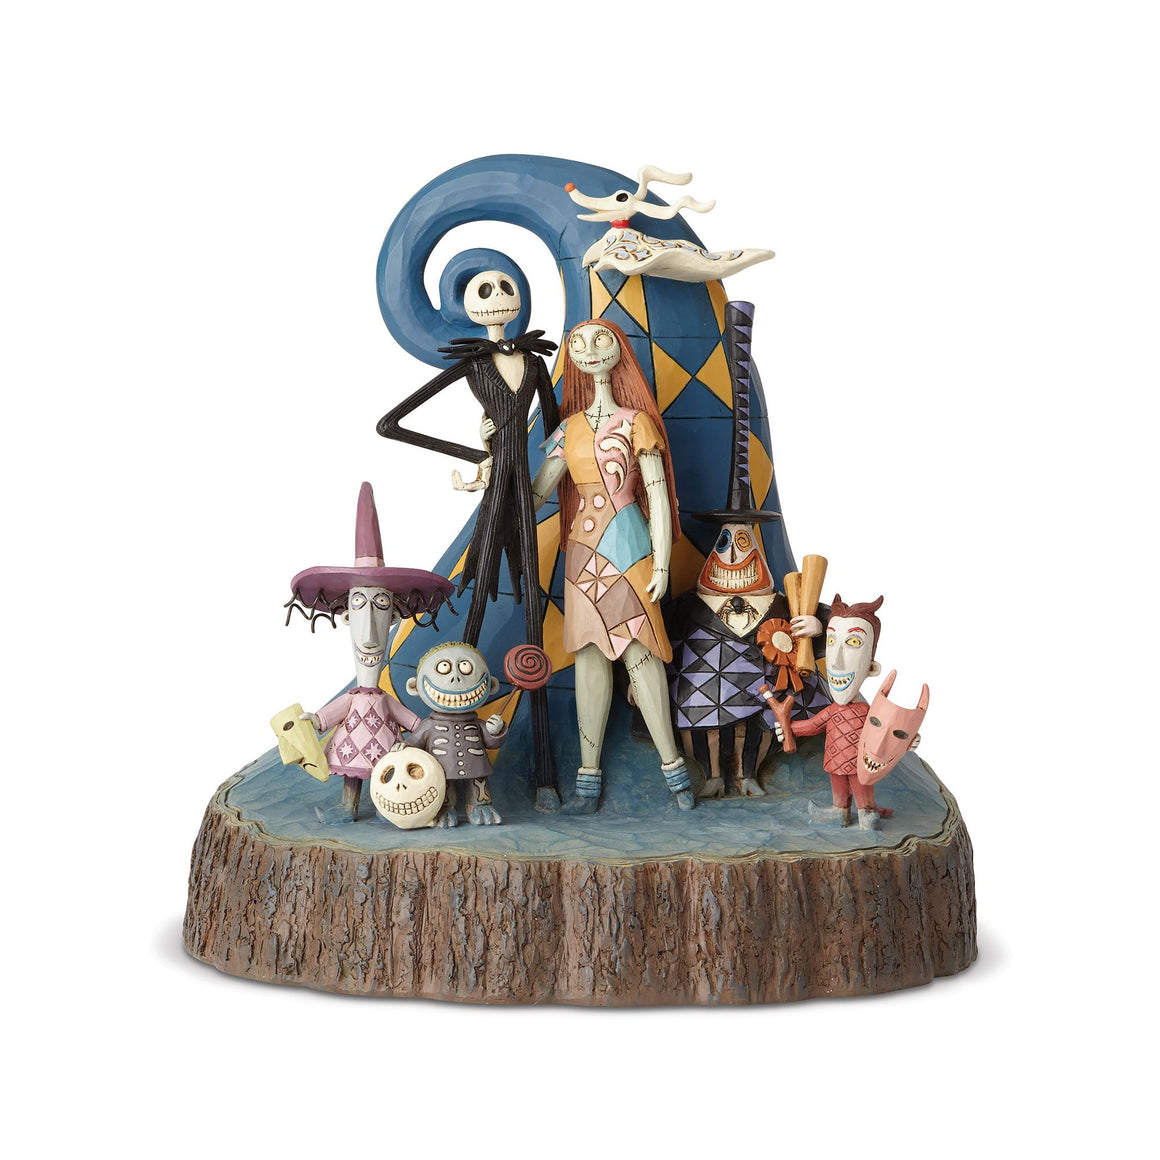 What Wonderful Nightmare Before Christmas Figurine - Disney Traditions by Jim Shore